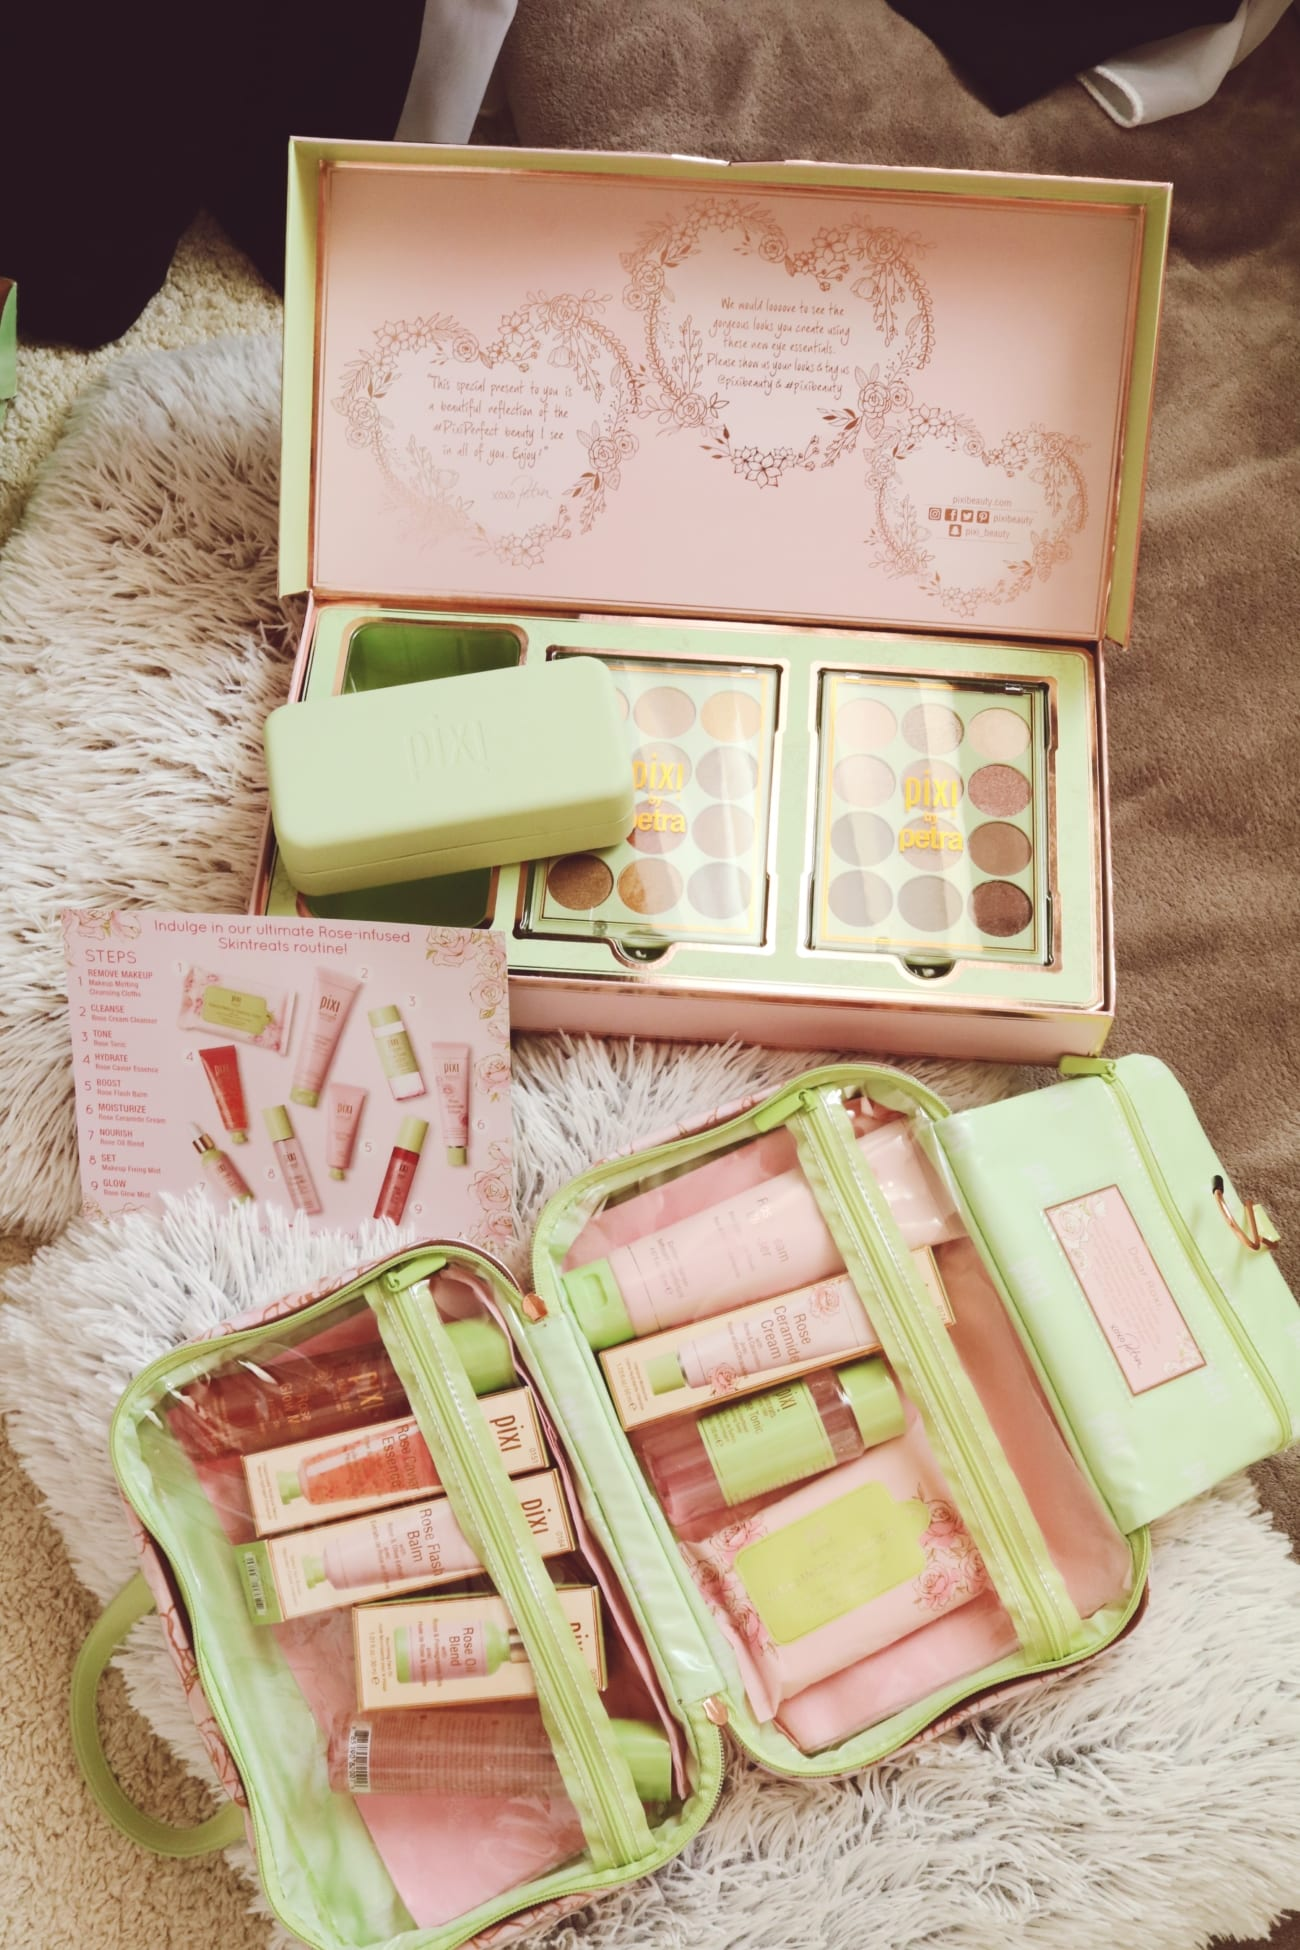 ? Pixi Beauty News & What can you find at Sephora Romania